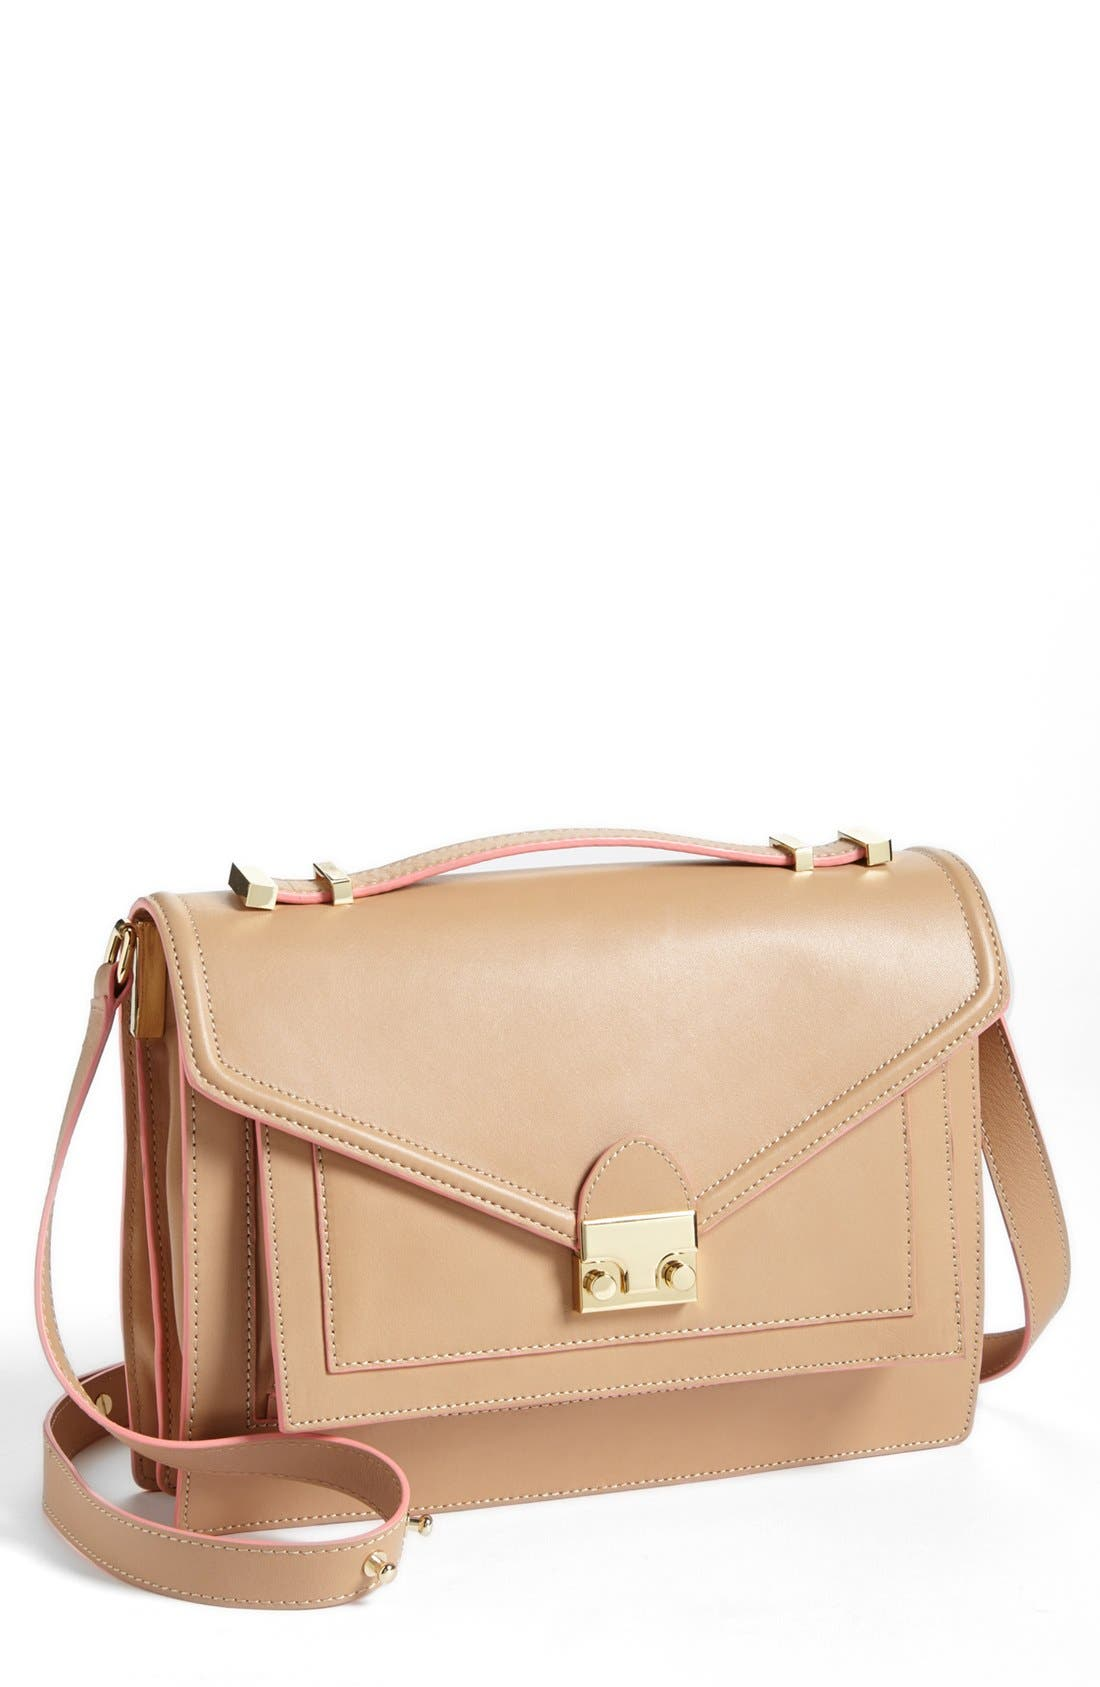 Main Image - Loeffler Randall 'Rider' Leather Satchel